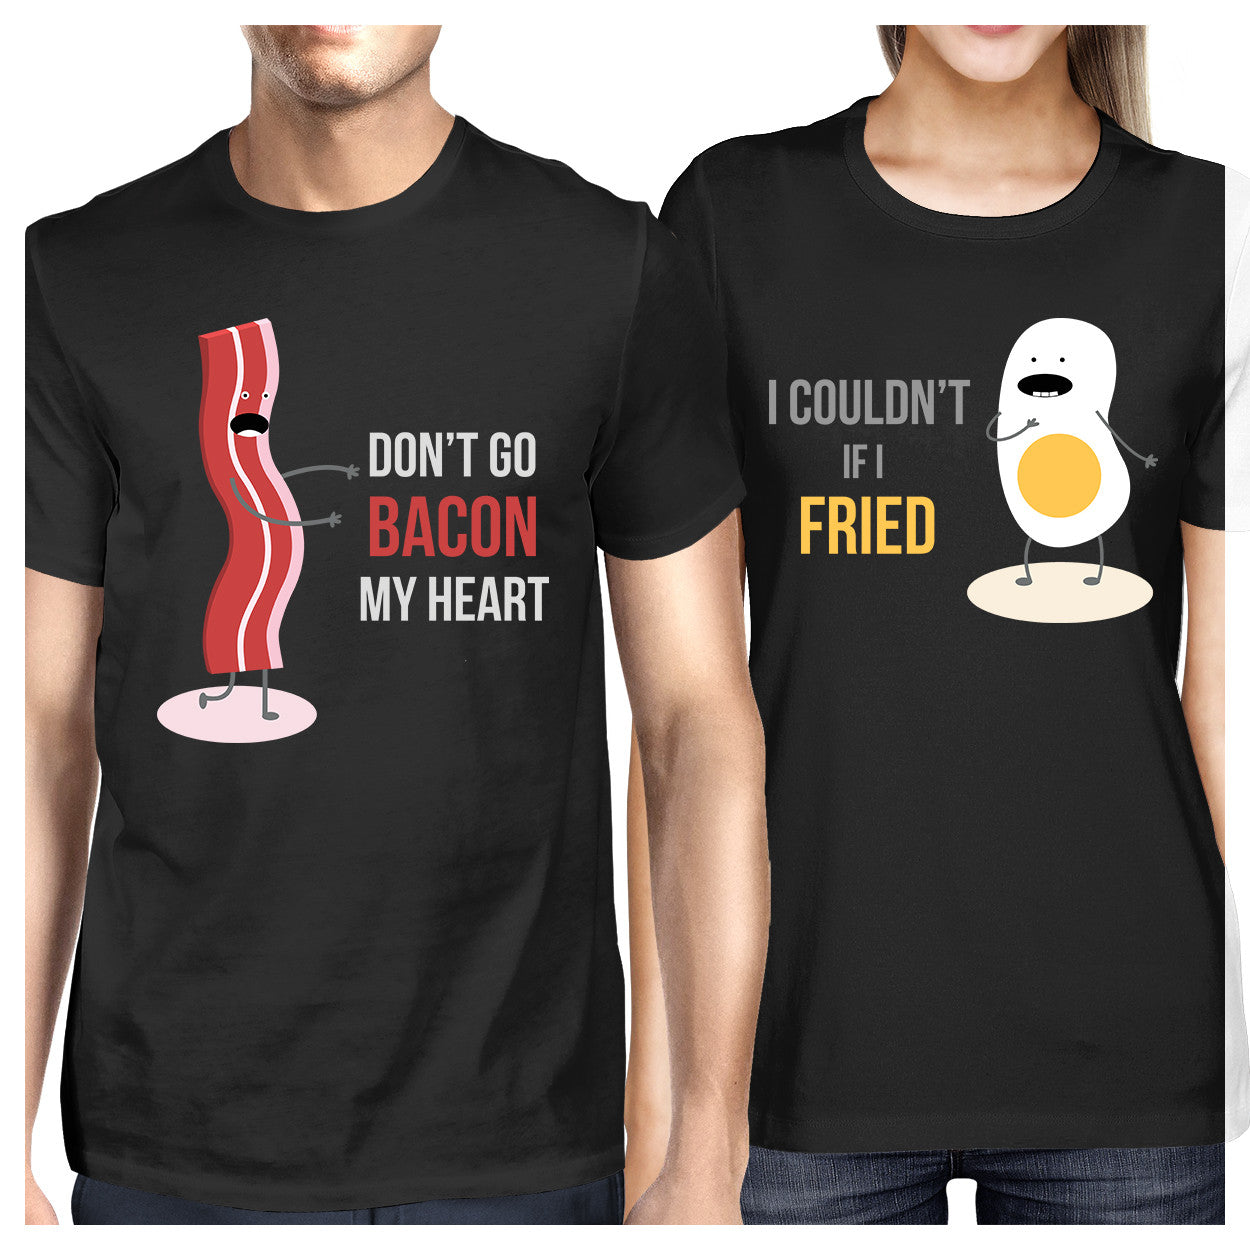 d64169e84b Don't Go Bacon My Heart, I Couldn't If I Fried Matching Couple Shirts ...